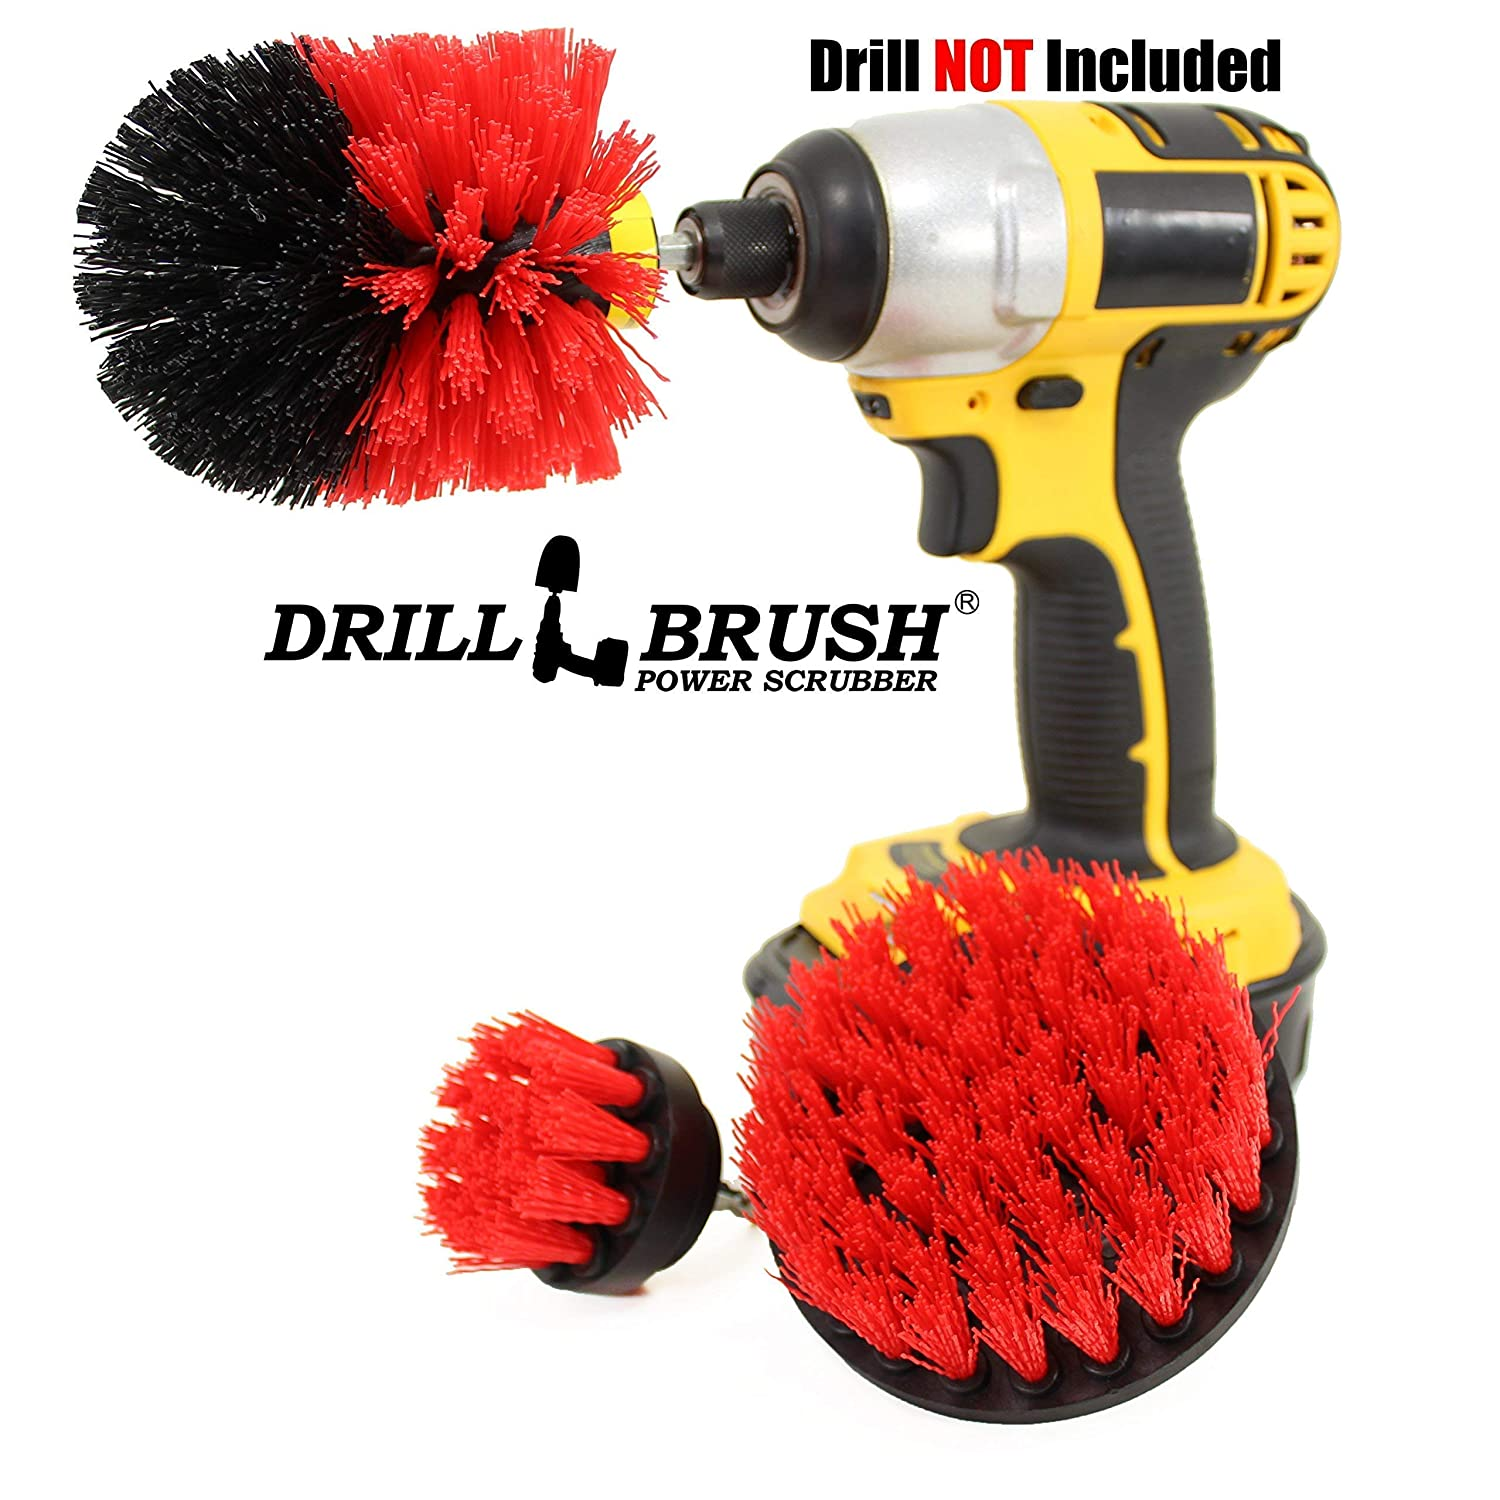 Drillbrush Bathroom Surfaces Tub, Shower, Tile and Grout All Purpose Power Scrubber Cleaning Kit Yellow-Orig-Yel-2-4-Lim-Short